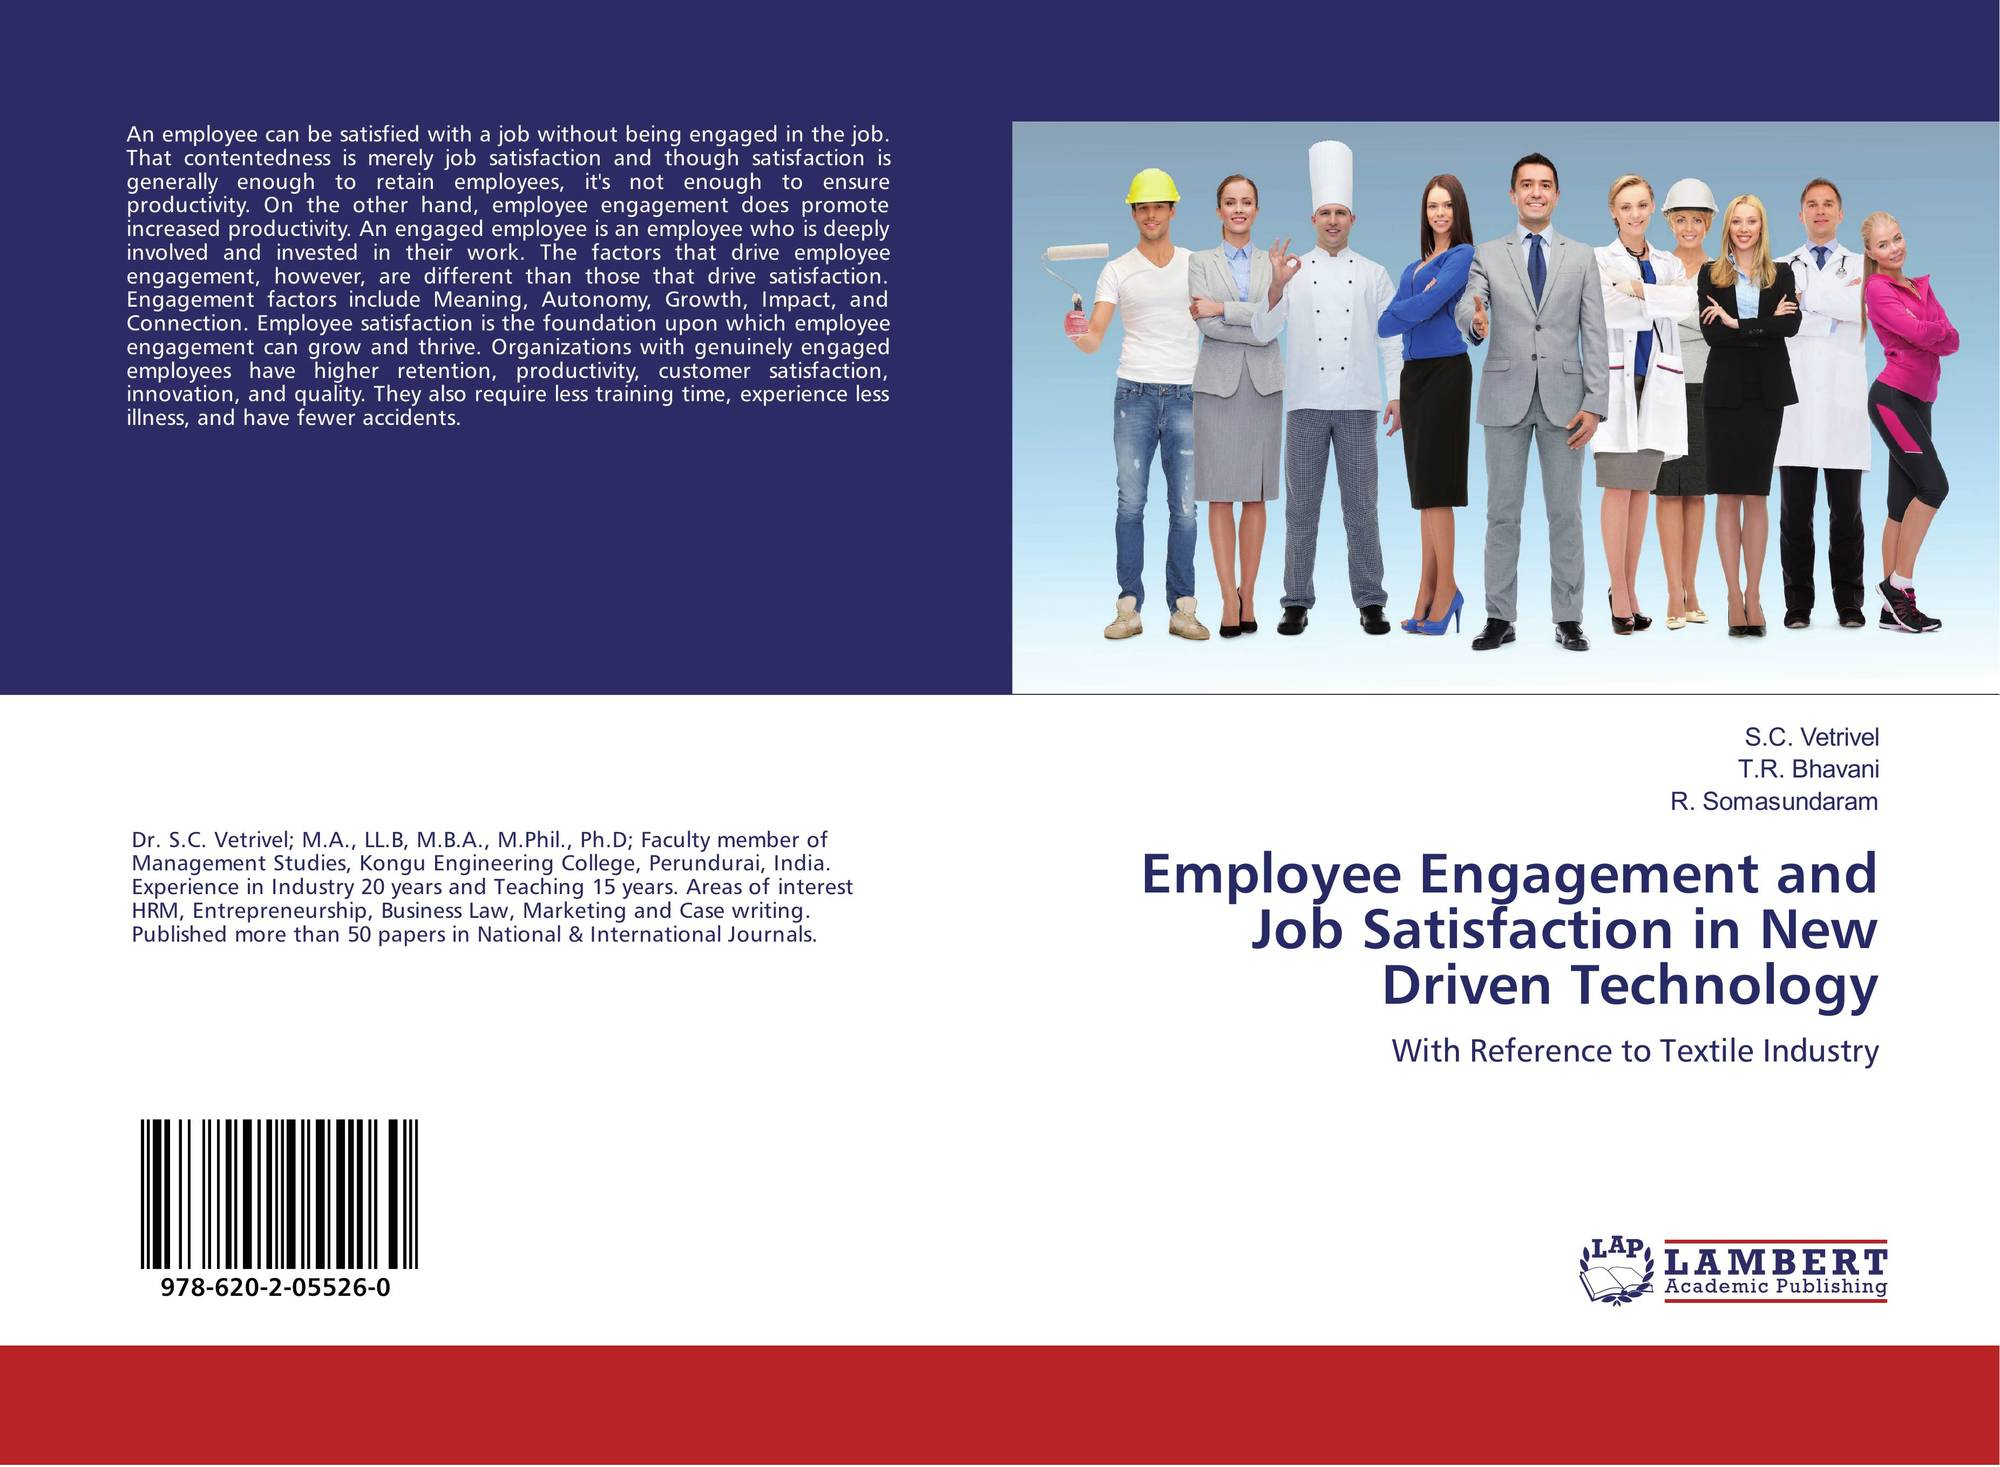 hrm job satisfaction The society for human resource management (shrm) just released two reports—one surveying 600 us employees in 22 industries on various job satisfaction factors and another polling 347 hr.